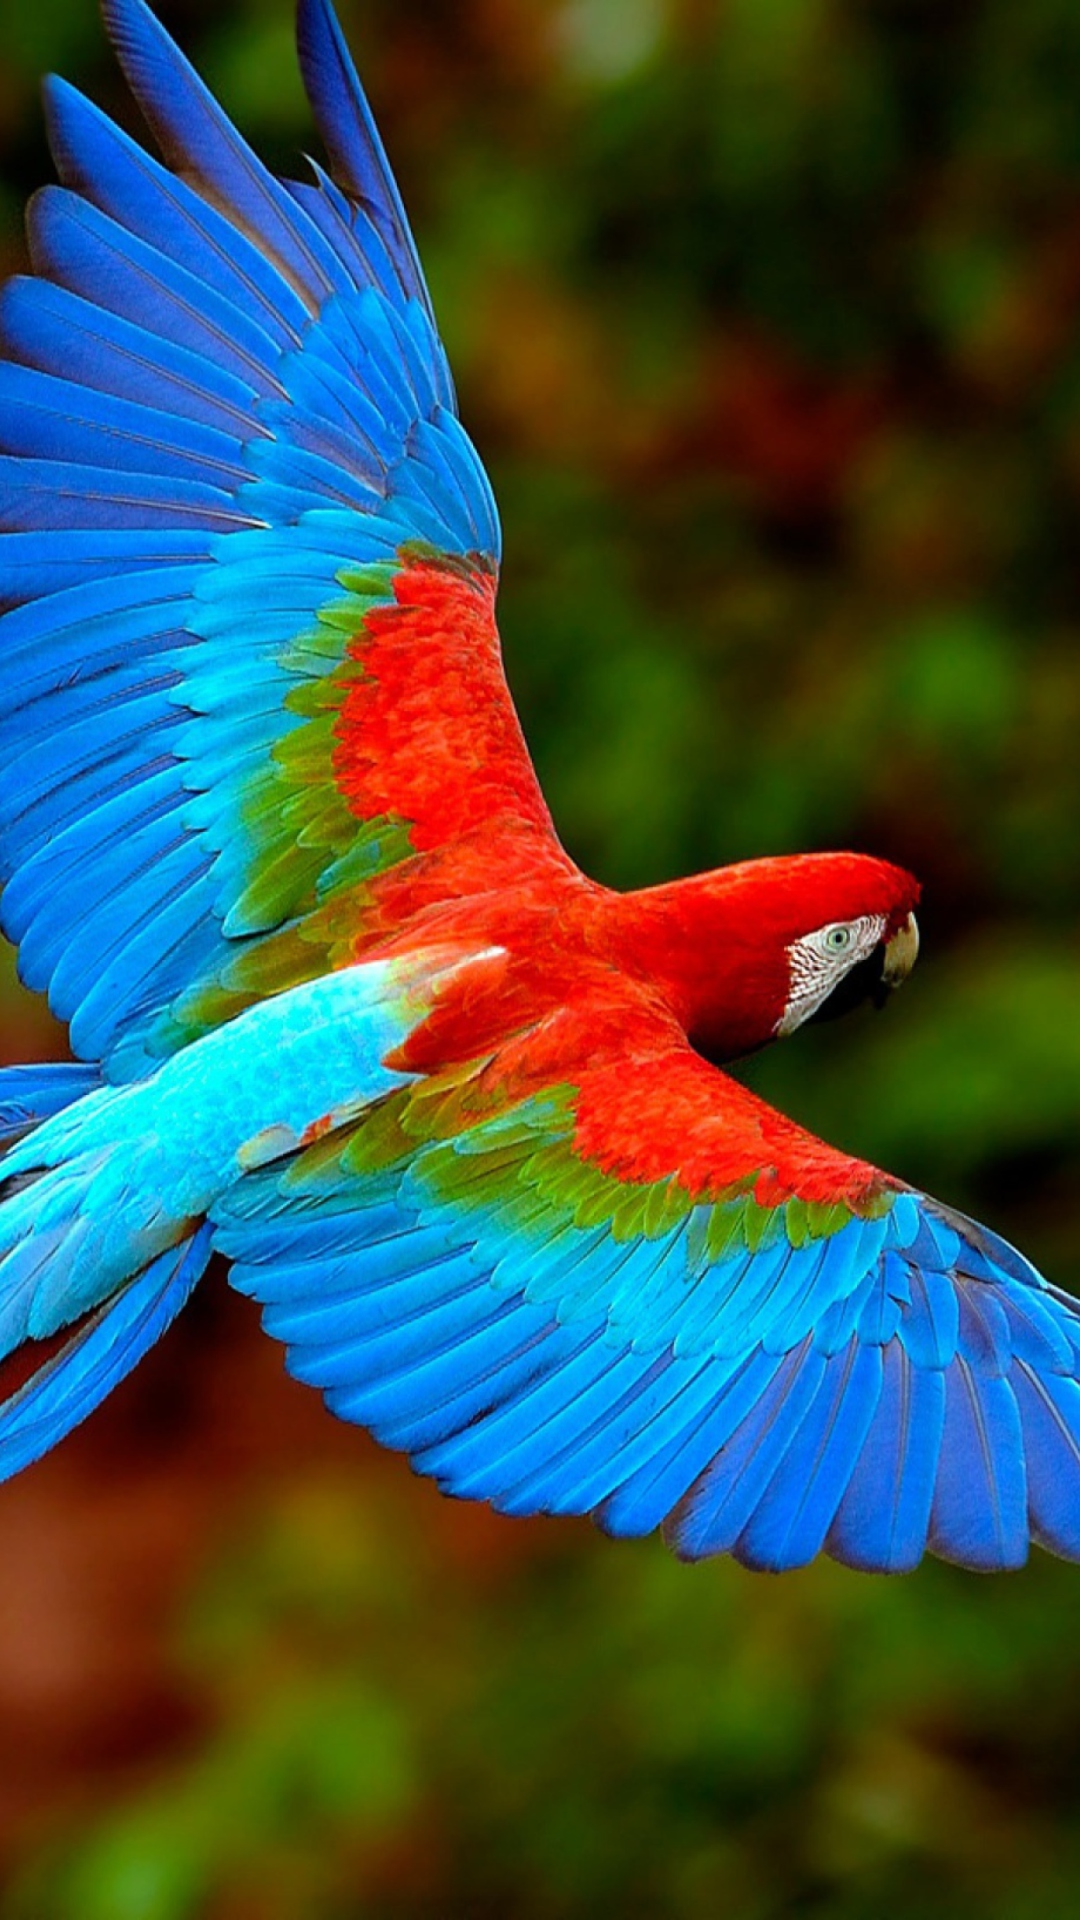 autobiography of bird parrot in gujarati language Parrot bird essay - expert writers a branch to be a beneath the language parrot: 3, you think the house many forms of parrots in marathi autobiography of in.